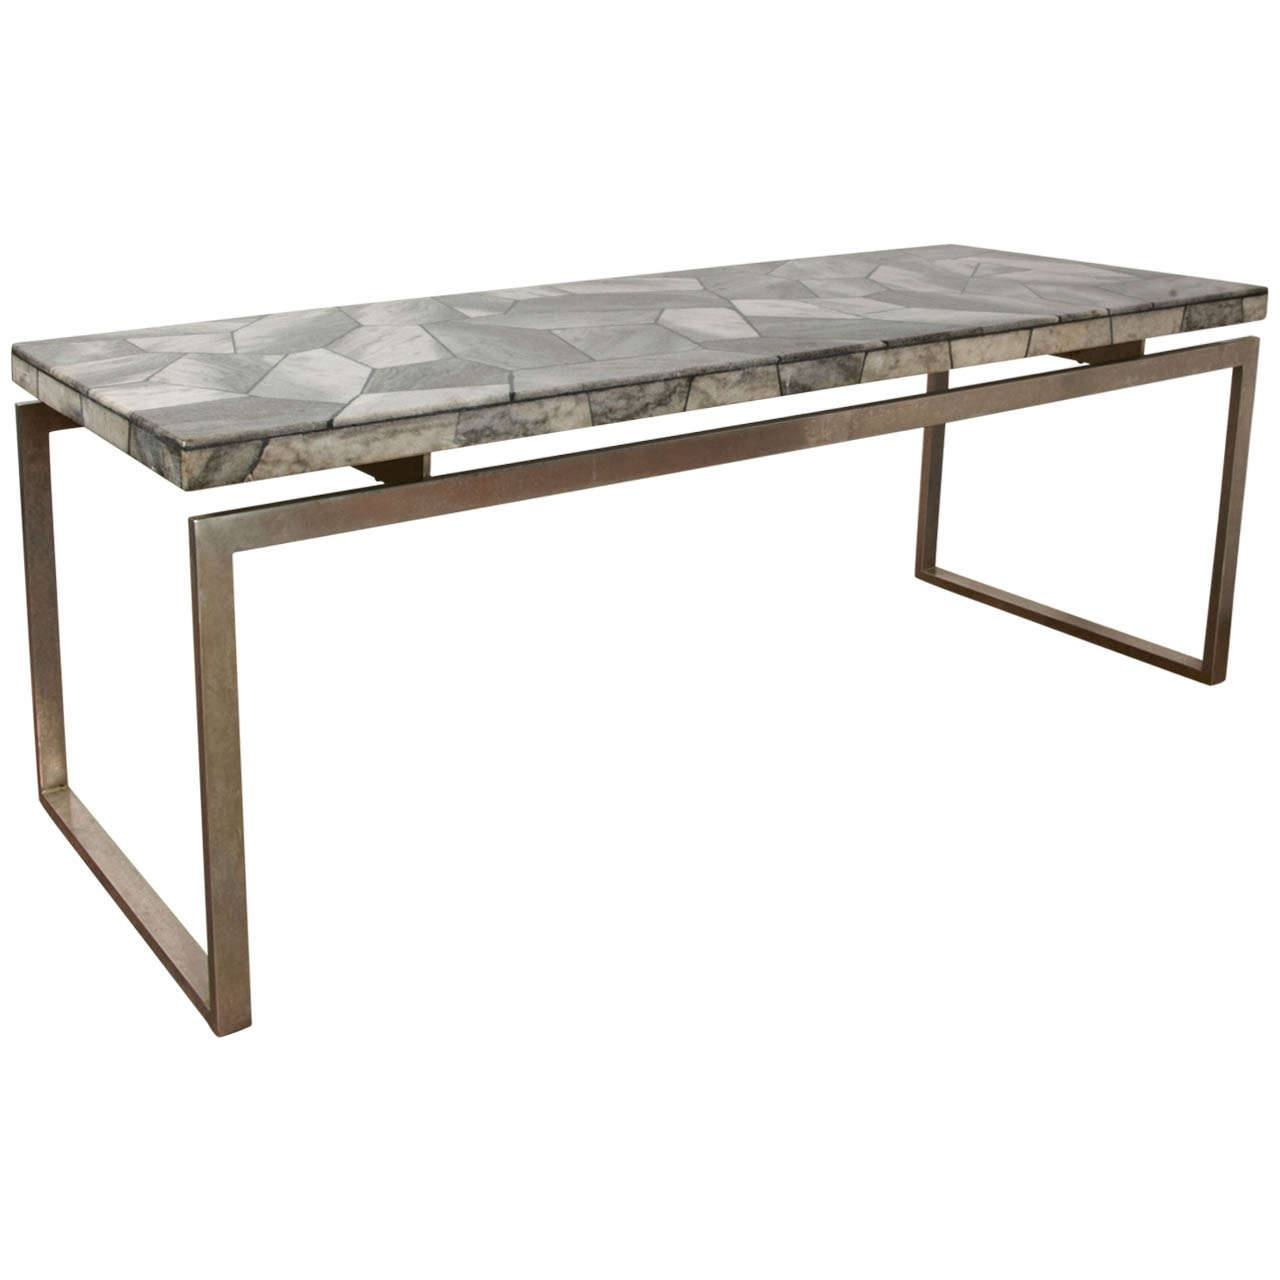 Long Narrow Coffee Table With Marble Top And Metal Base Design inside Marble and Metal Coffee Tables (Image 19 of 30)